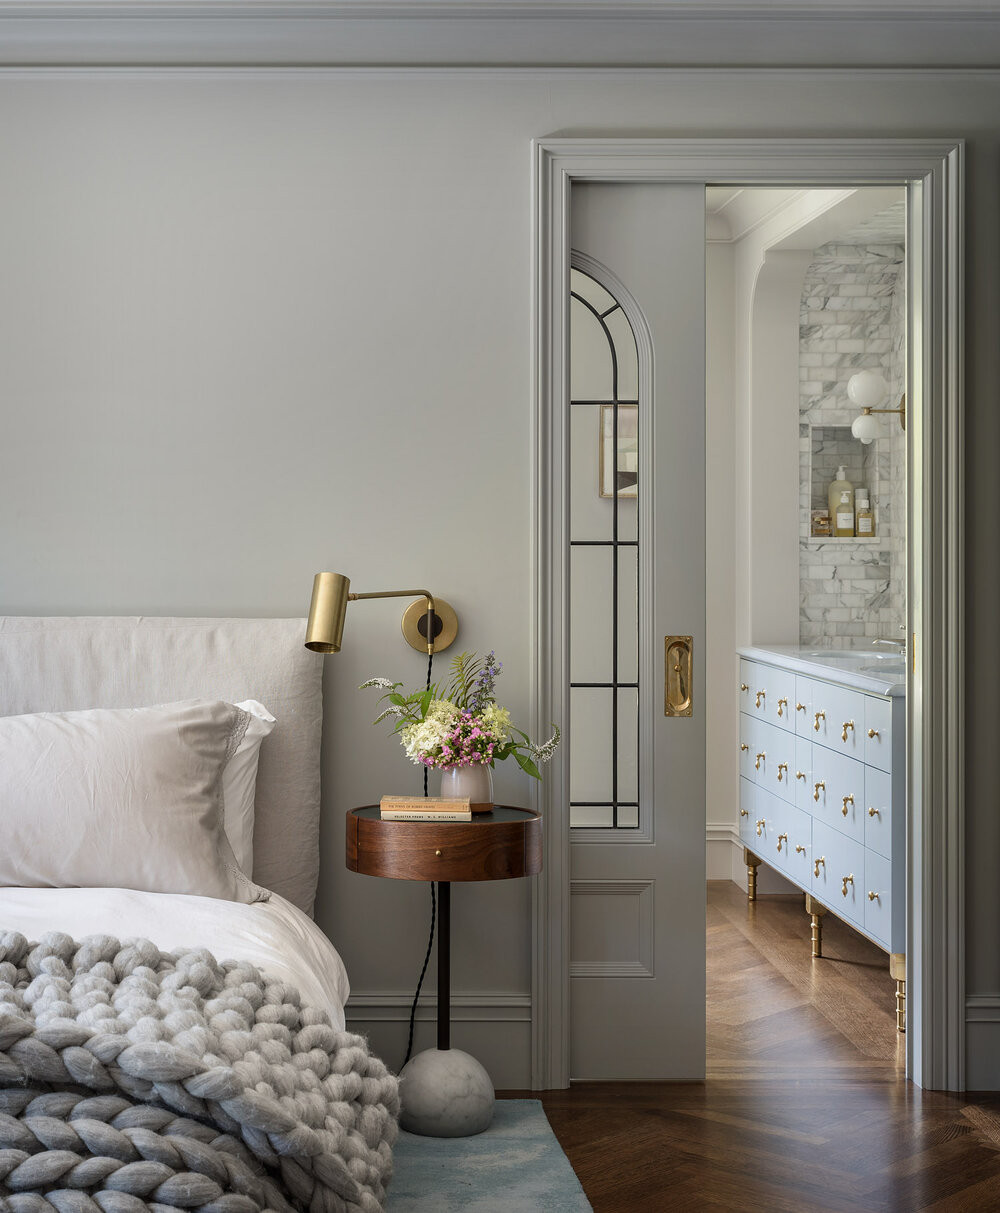 Beautiful neutral bedroom with arched pocket door.